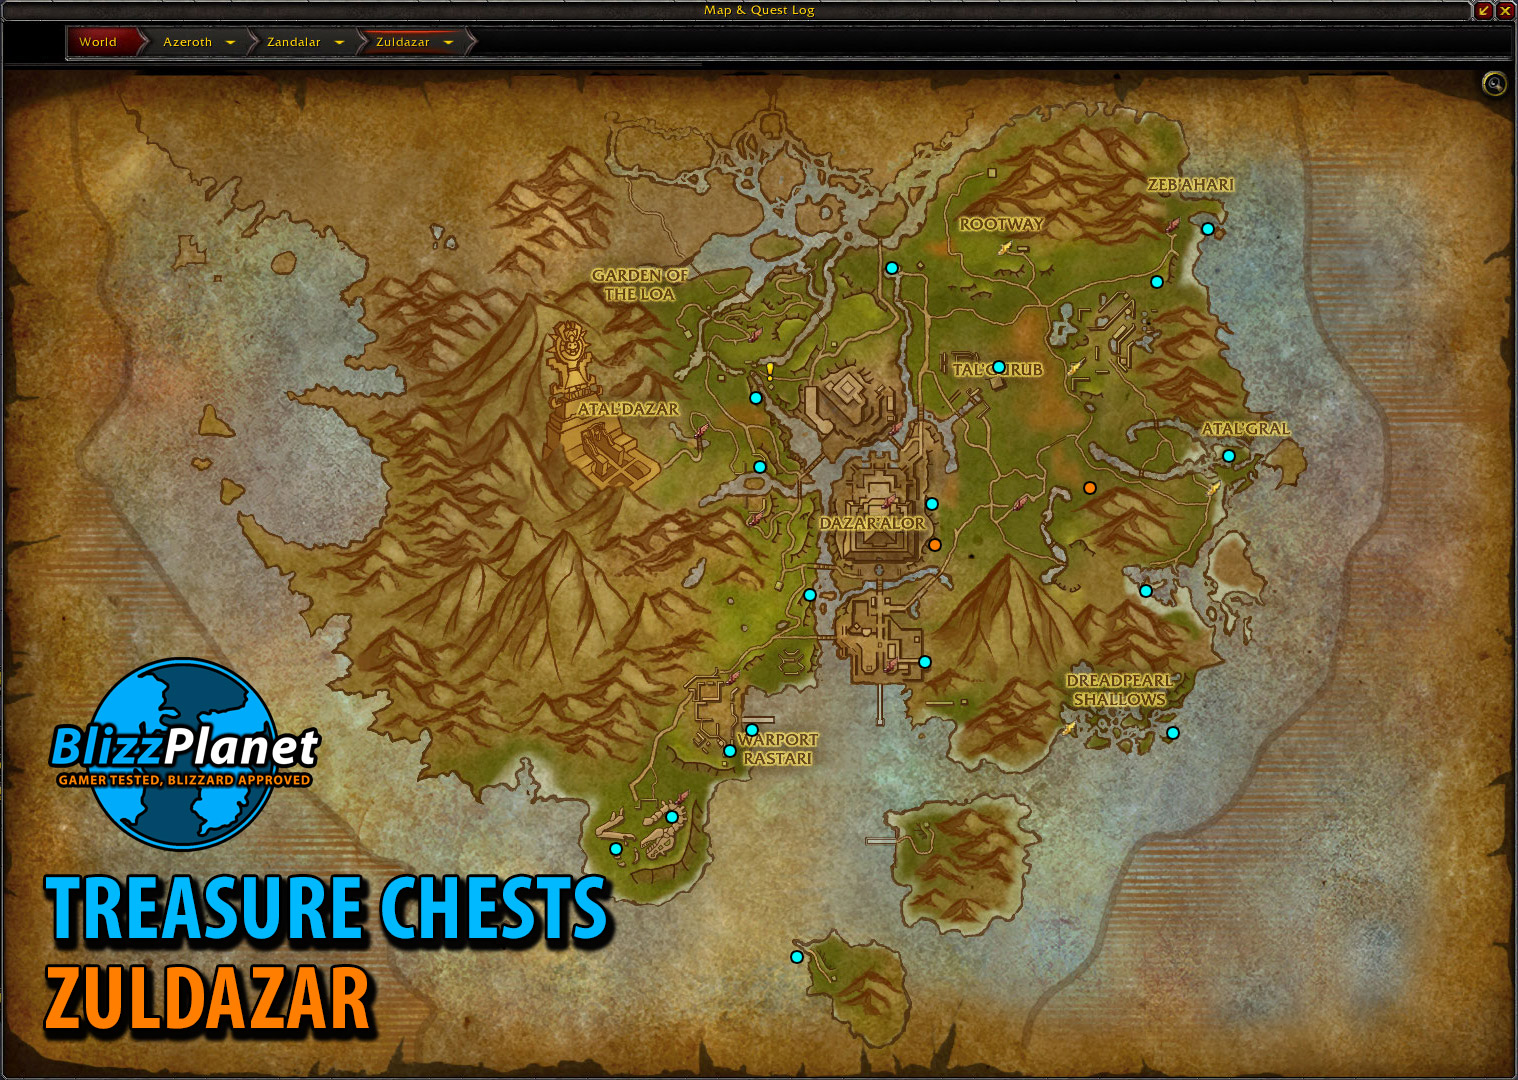 Treasure Chest Maps - Battle for Azeroth - Blizzplanet